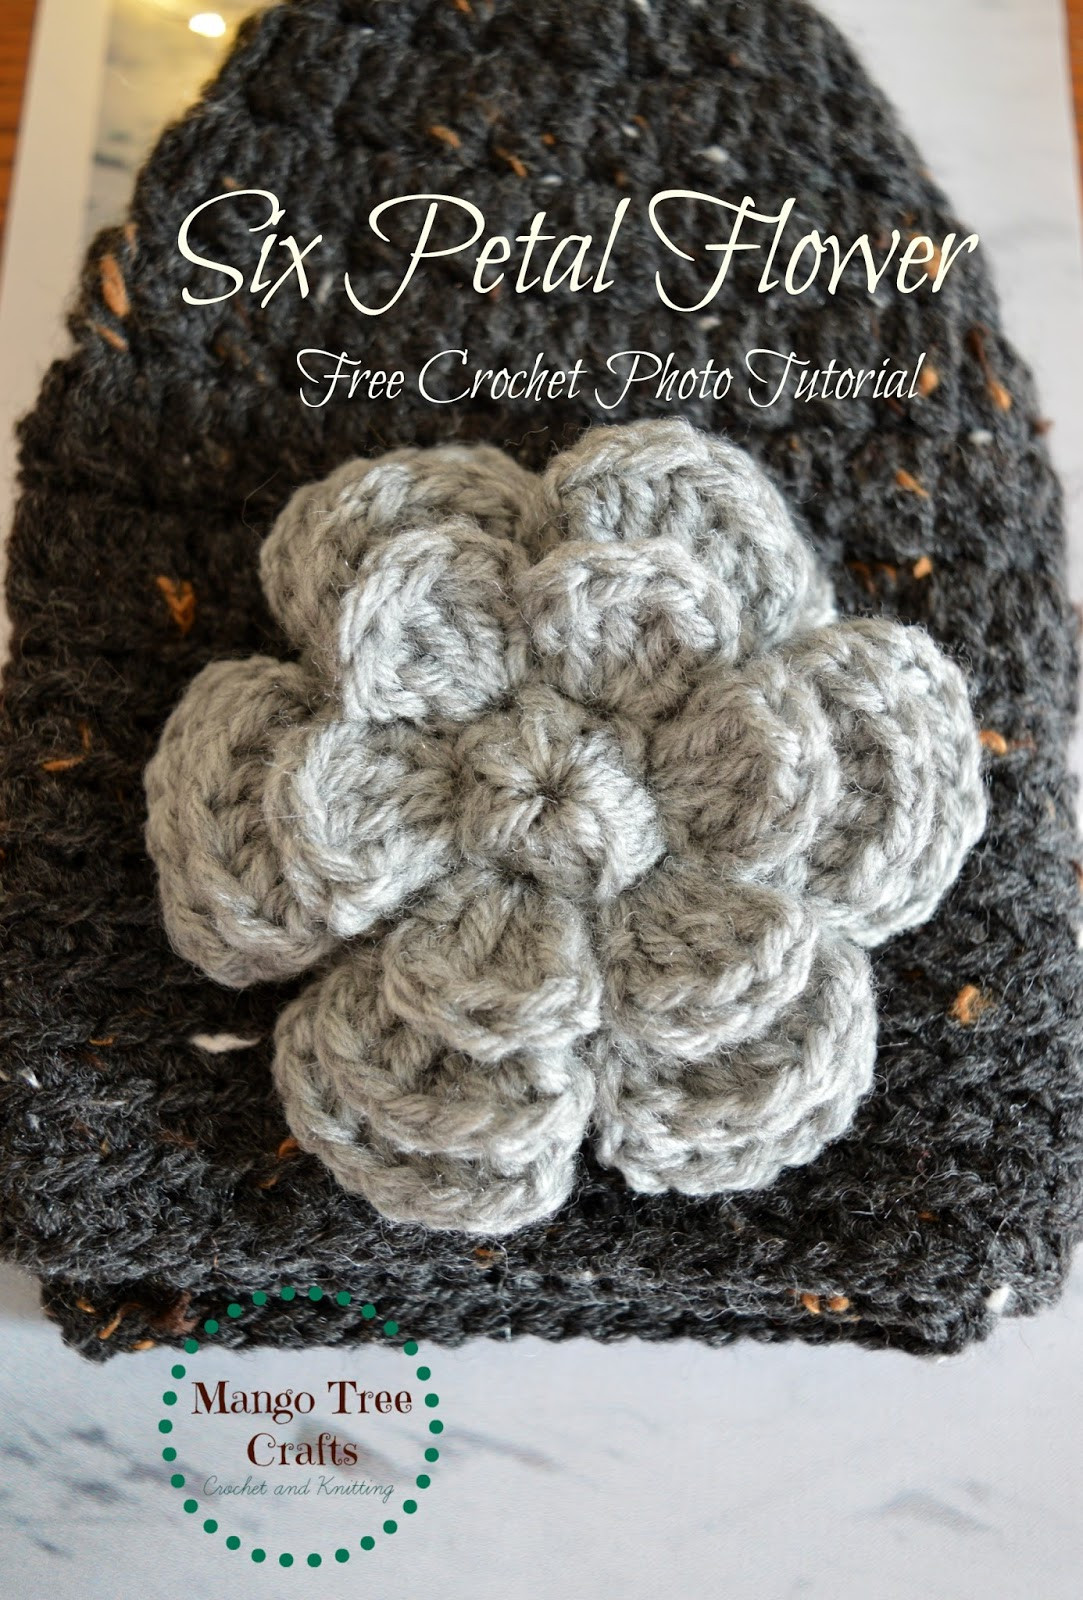 Free Crochet Flower Patterns Elegant Mango Tree Crafts Six Petal Flower Free Crochet Pattern Of Amazing 42 Images Free Crochet Flower Patterns